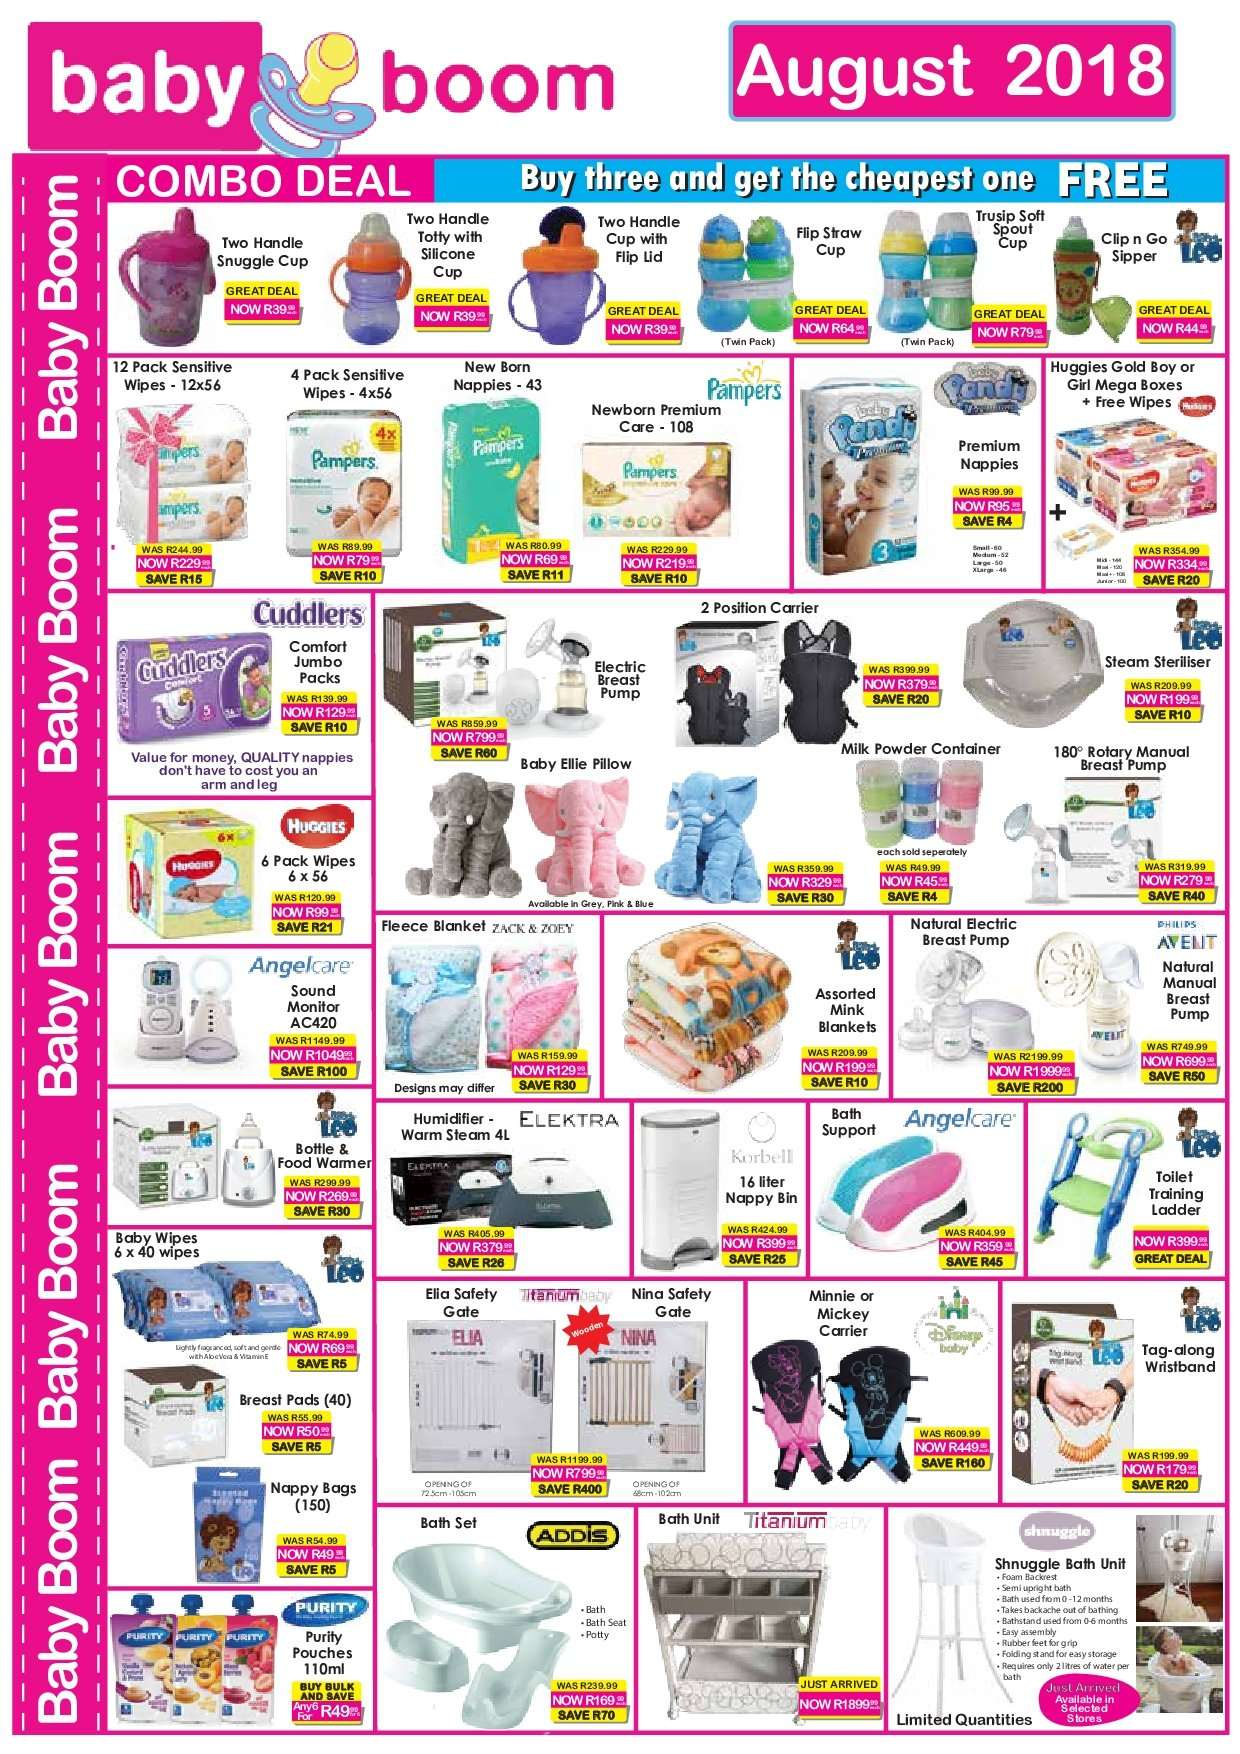 Baby Boom special - 08.01.2018 - 08.31.2018 - Sales products - bag, bath, bin, blanket, container, cup, milk, snuggle, wipes, huggies, pillow, pampers, pump, nappies, steam, toilet, diapers. Page 1.